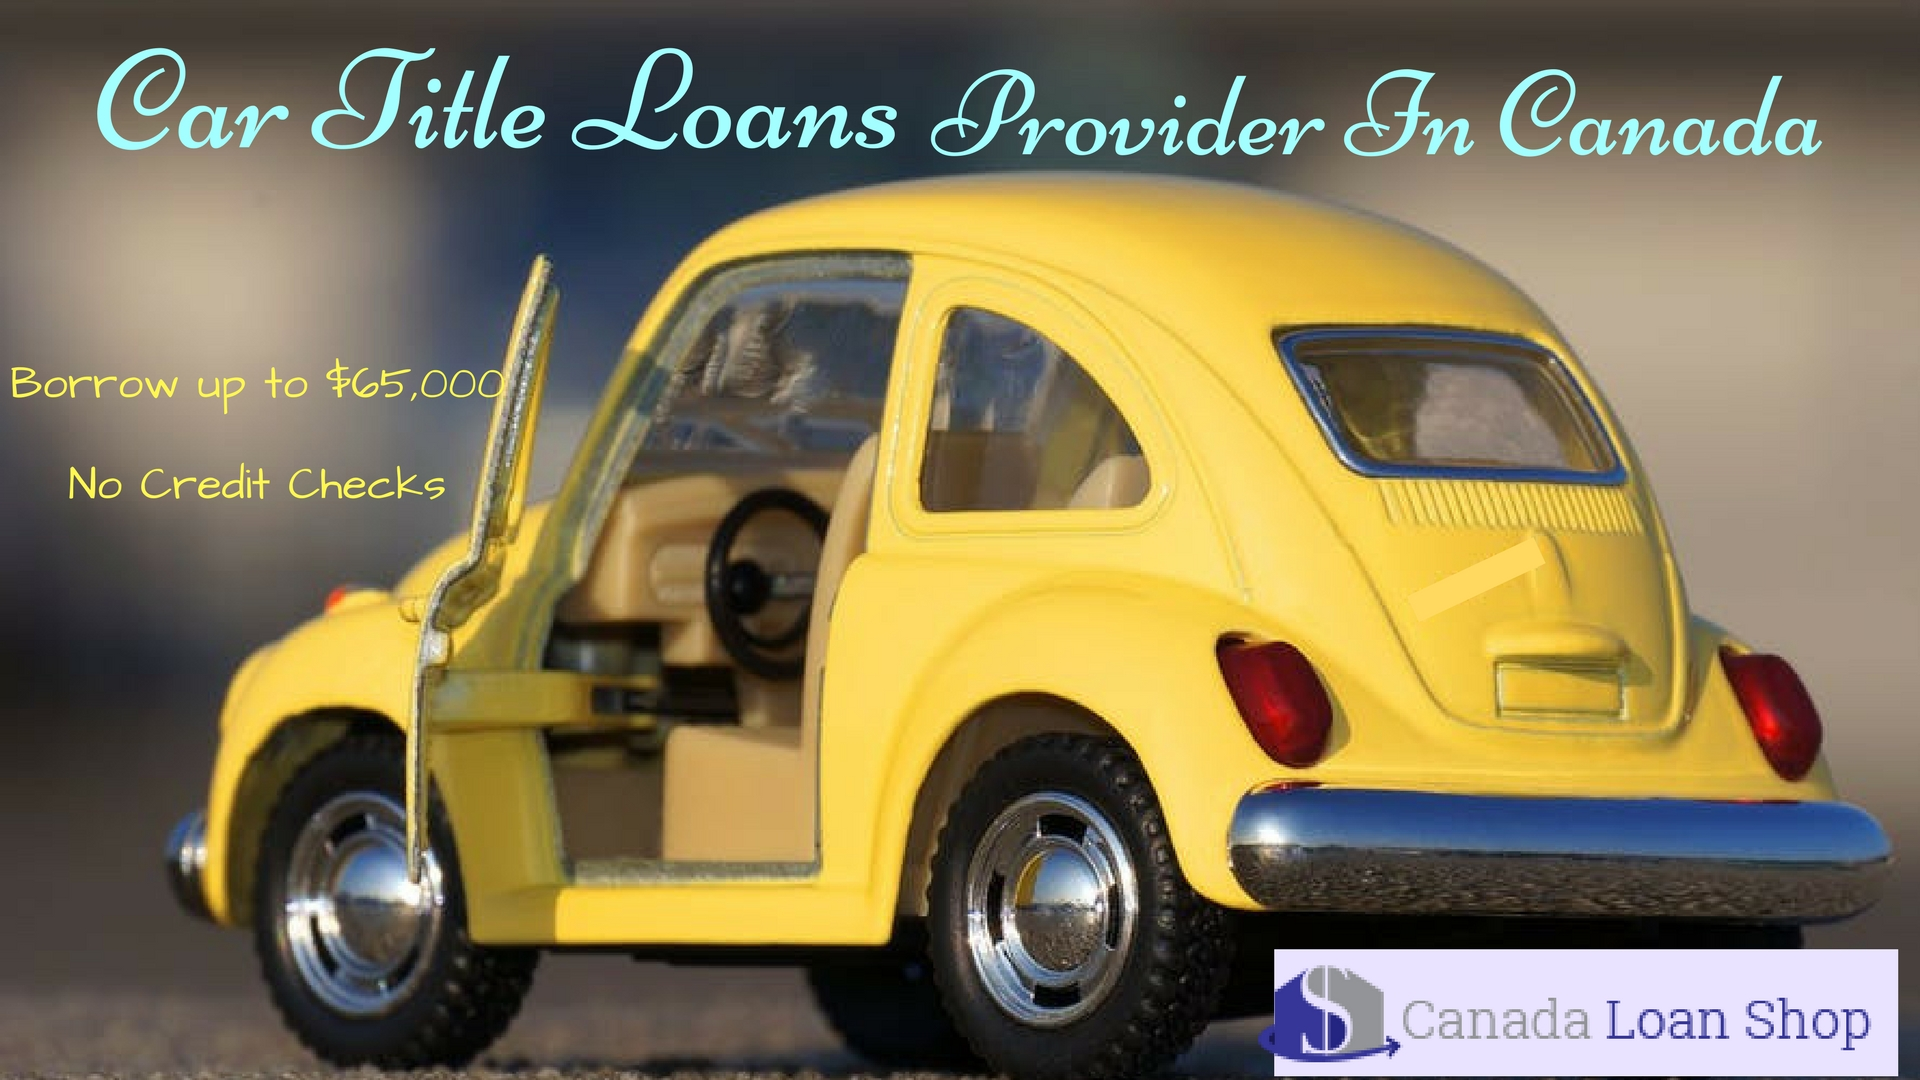 Car Title Loans Provider Canada